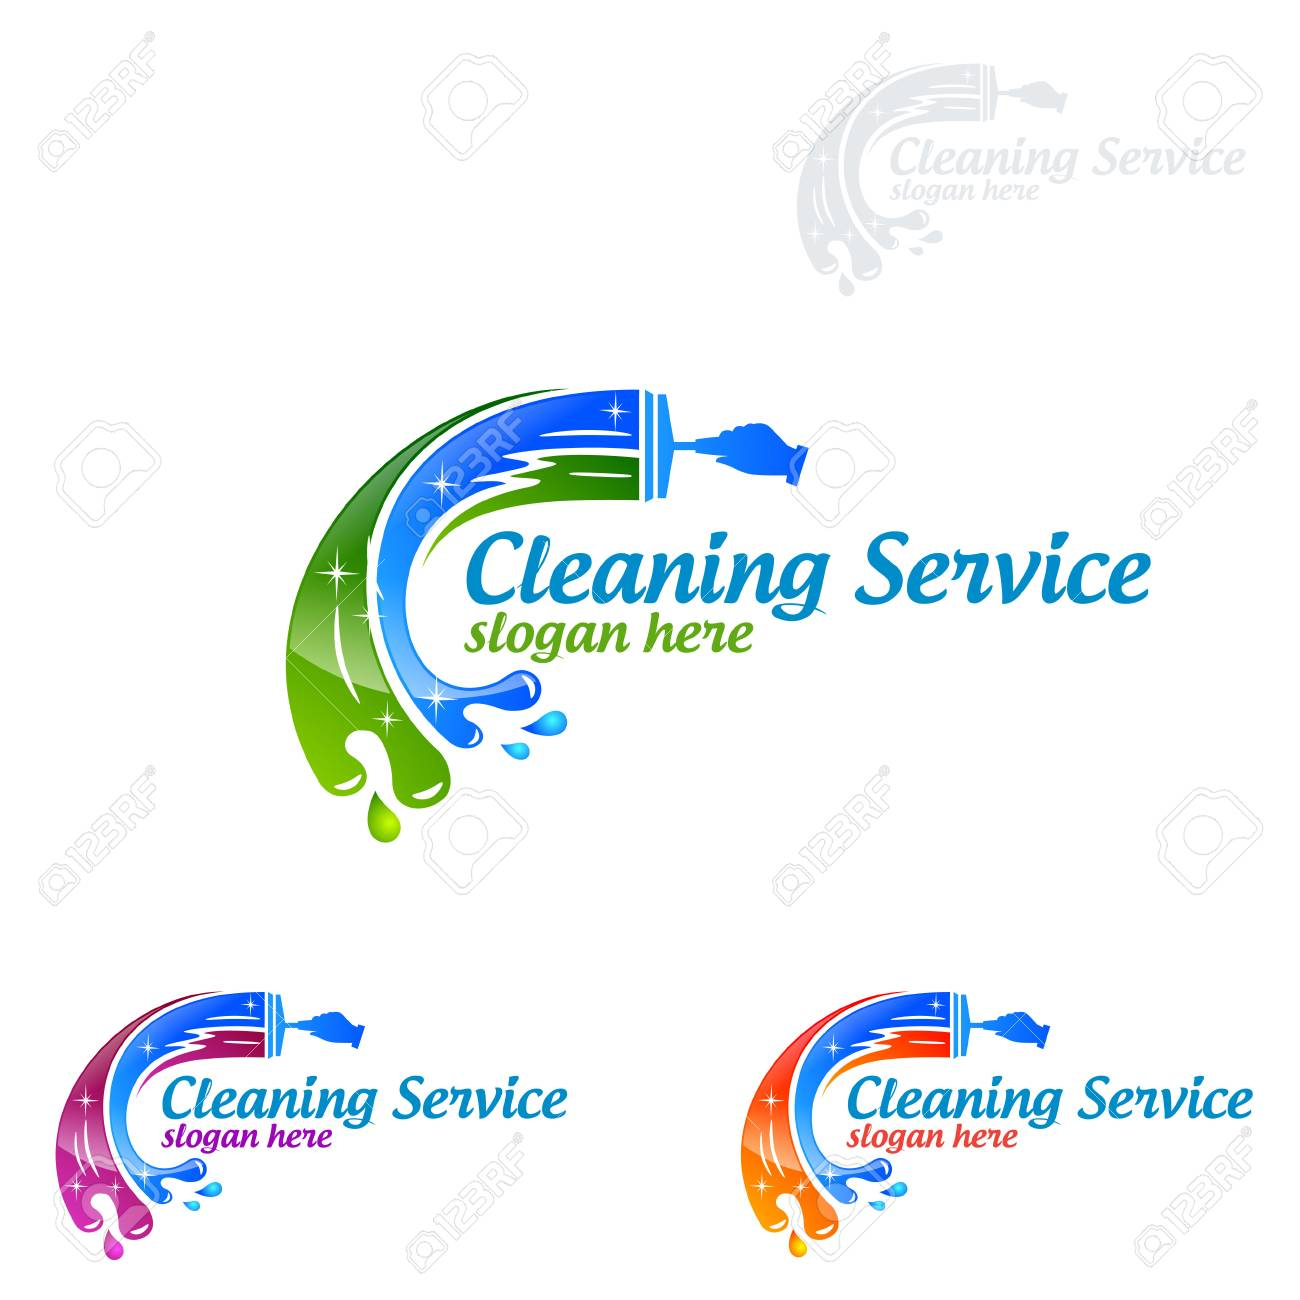 Cleaning Service Vector Logo Design Eco Friendly Concept For Royalty Free Cliparts Vectors And Stock Illustration Image 95658686